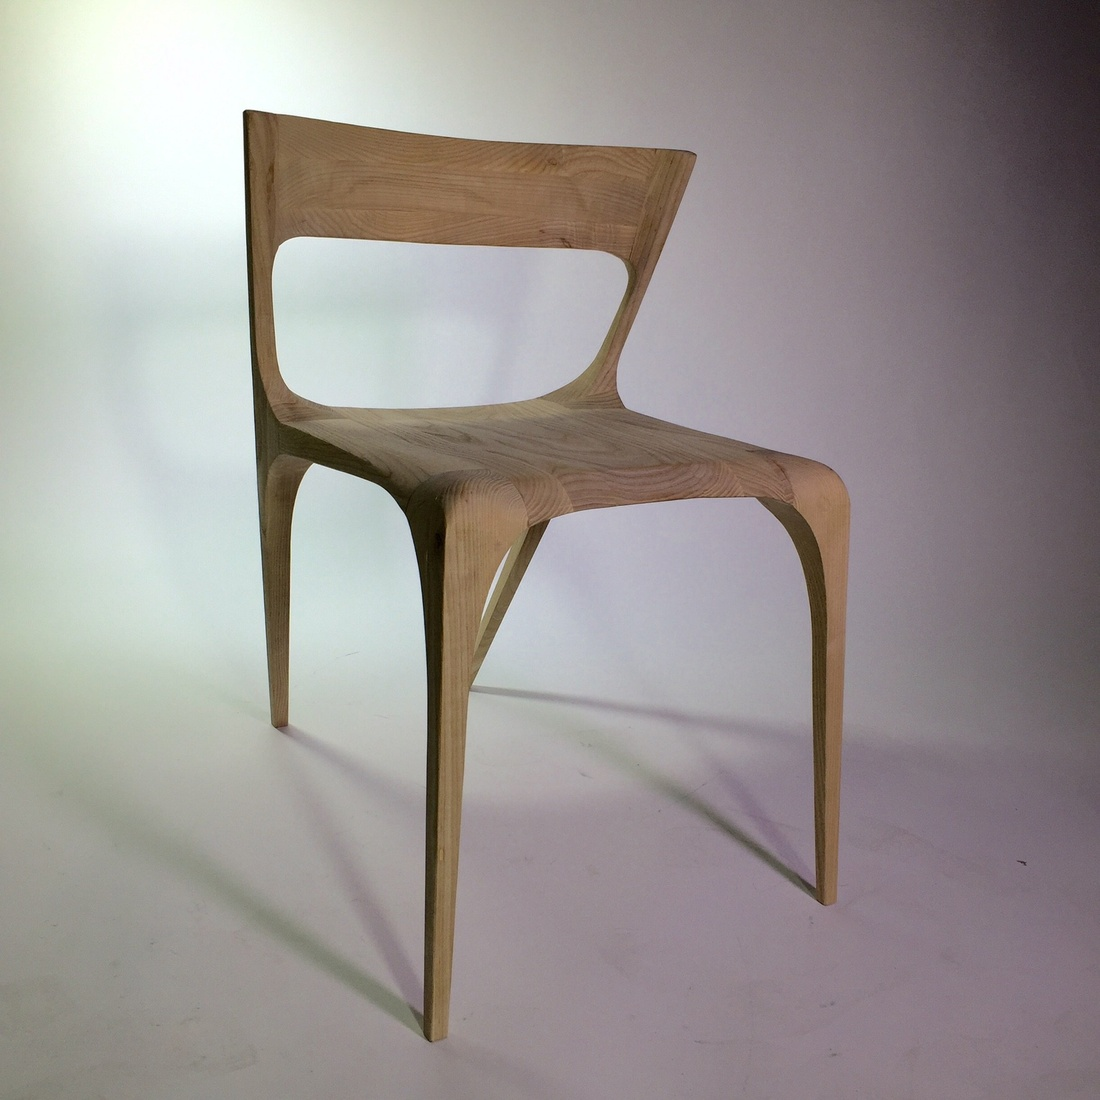 Chair by Hugo Fenaux